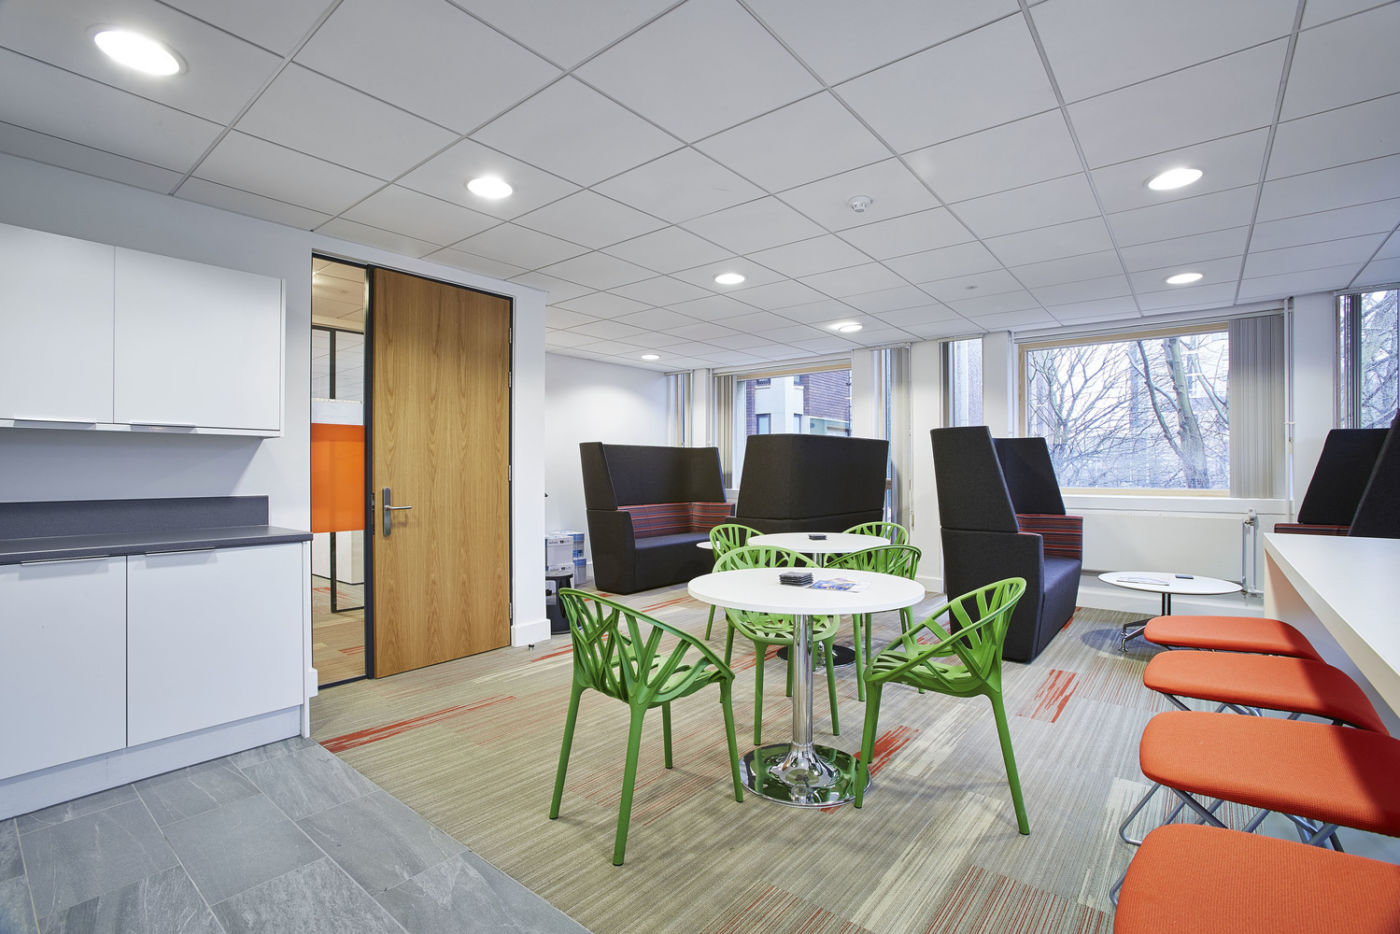 Office kitchen with bright furniture